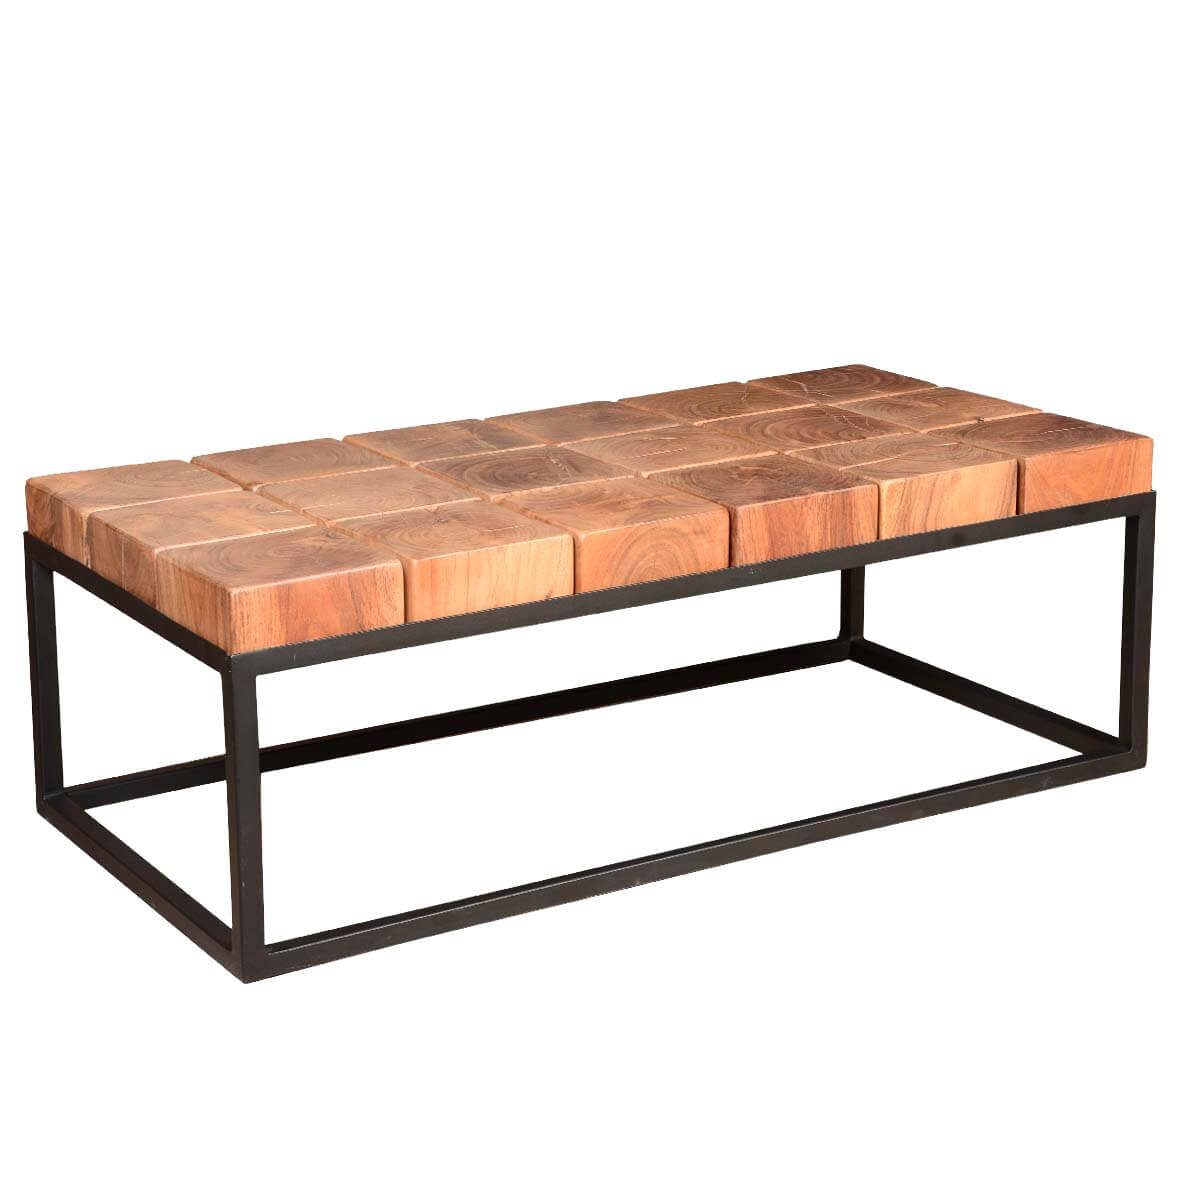 Solid acacia wood block contemporary iron base rustic coffee table Rustic iron coffee table